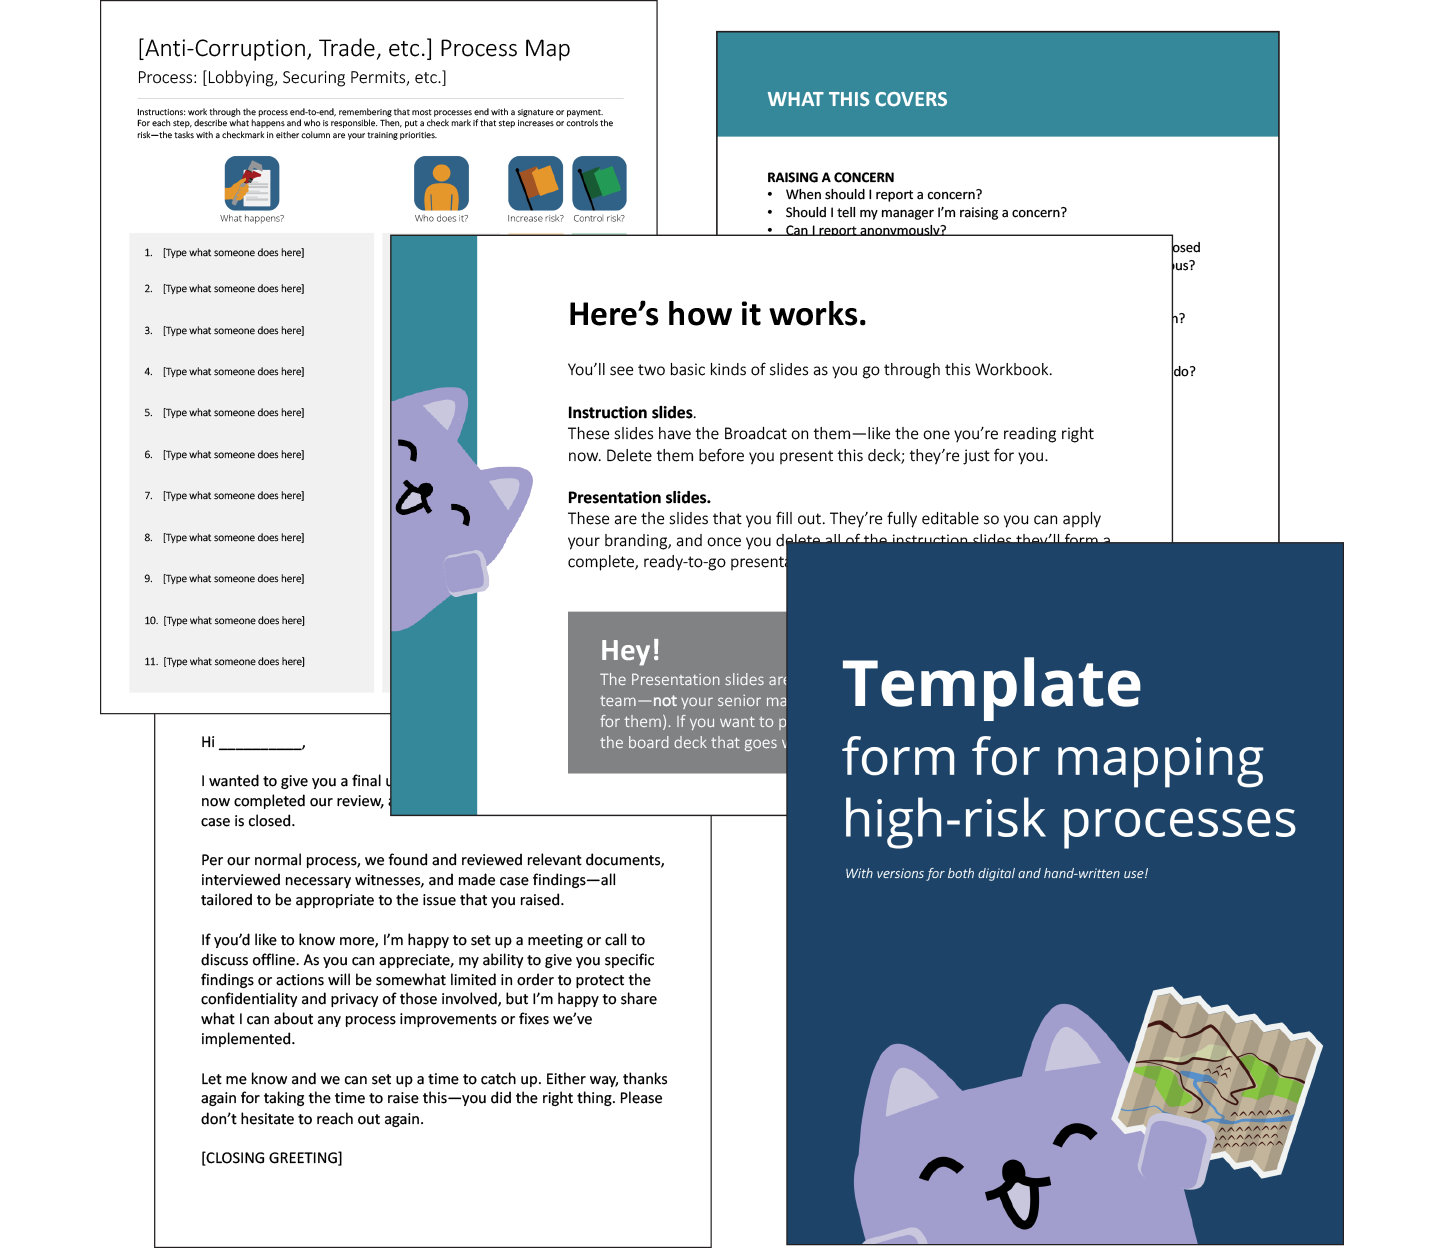 Some simple how-to guides for compliance, created by Broadcat.